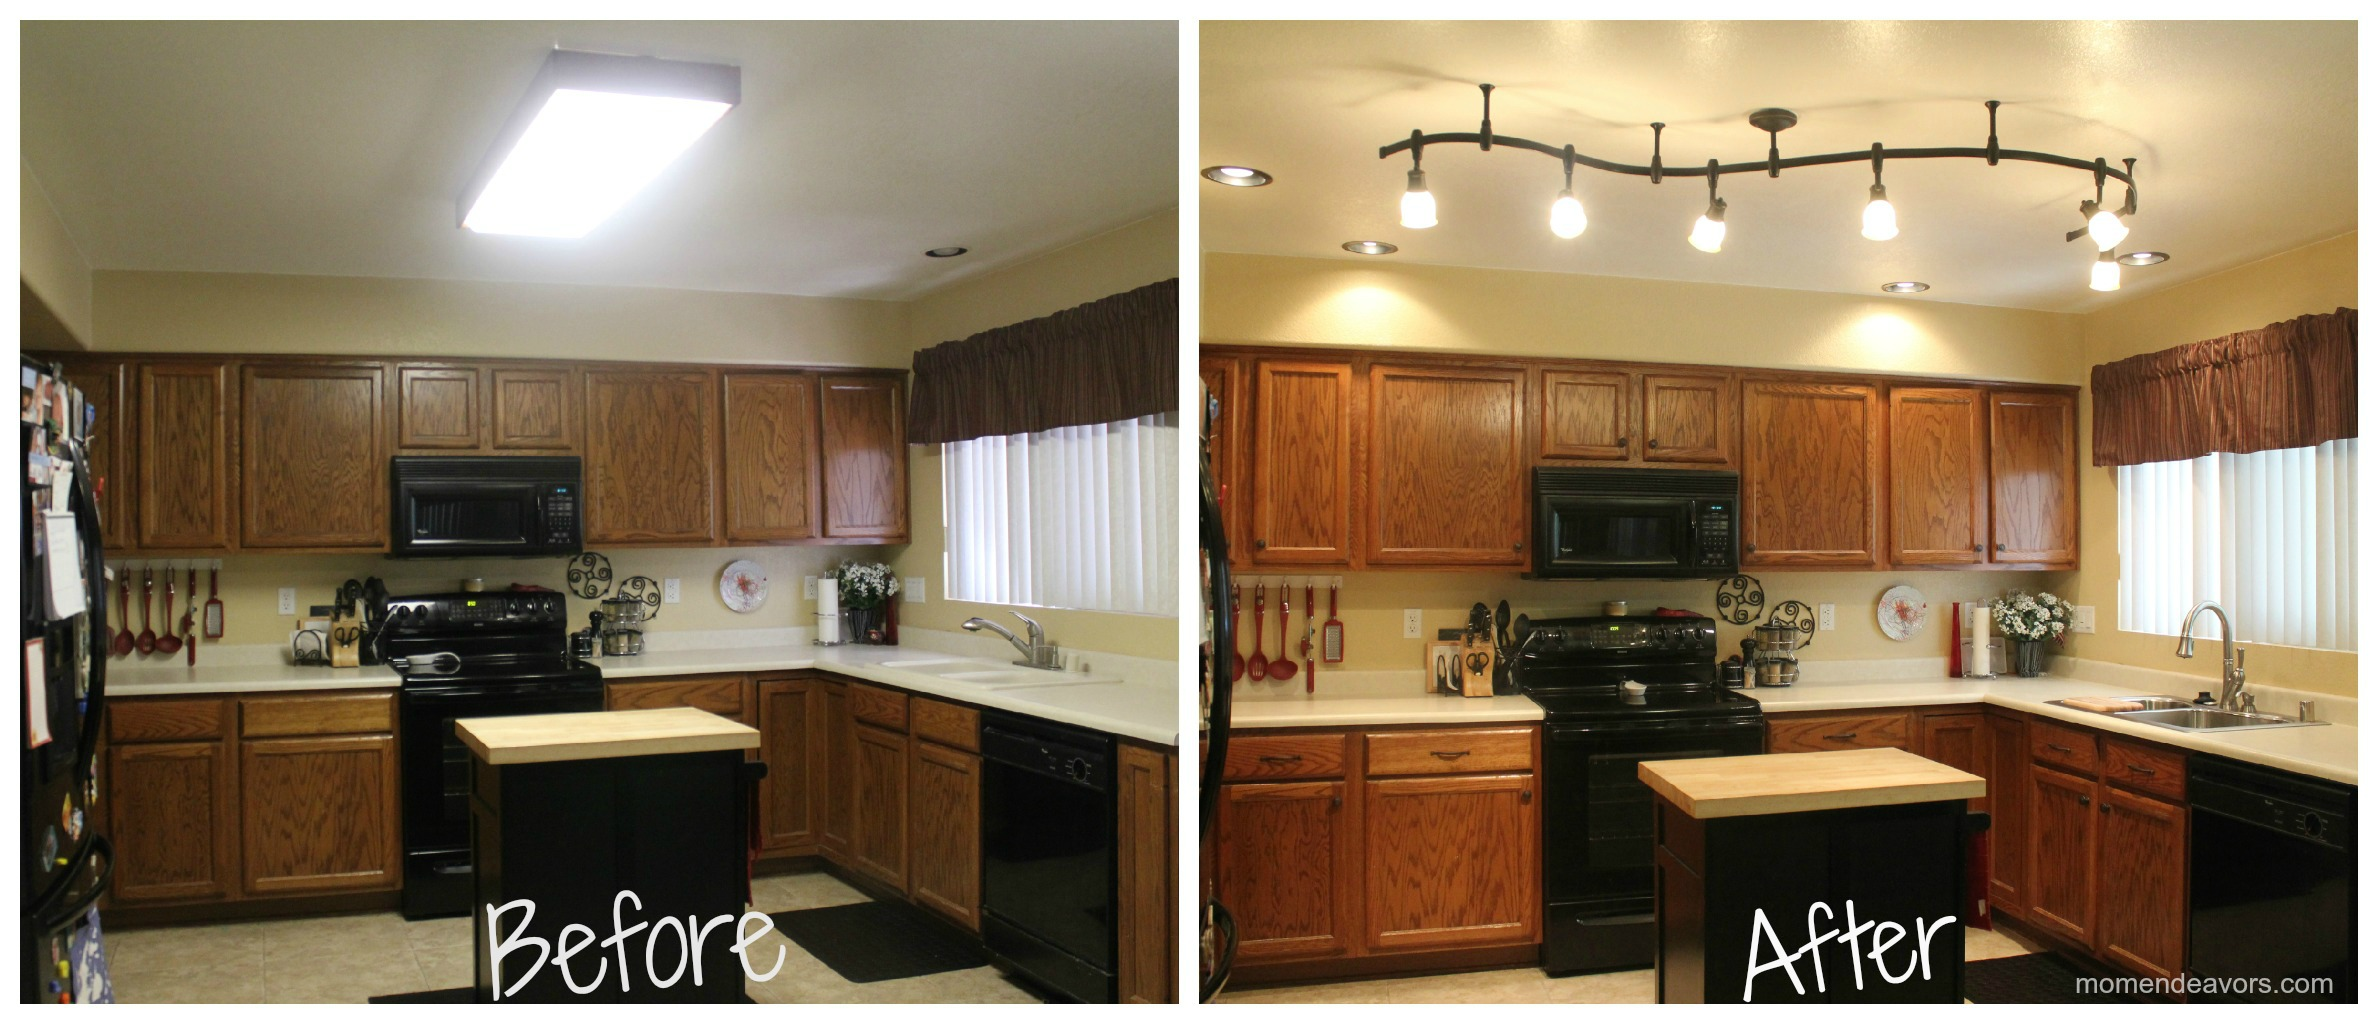 How To Remodel A Kitchen Island Small Kitchen Remodel Before And After For Stunning And